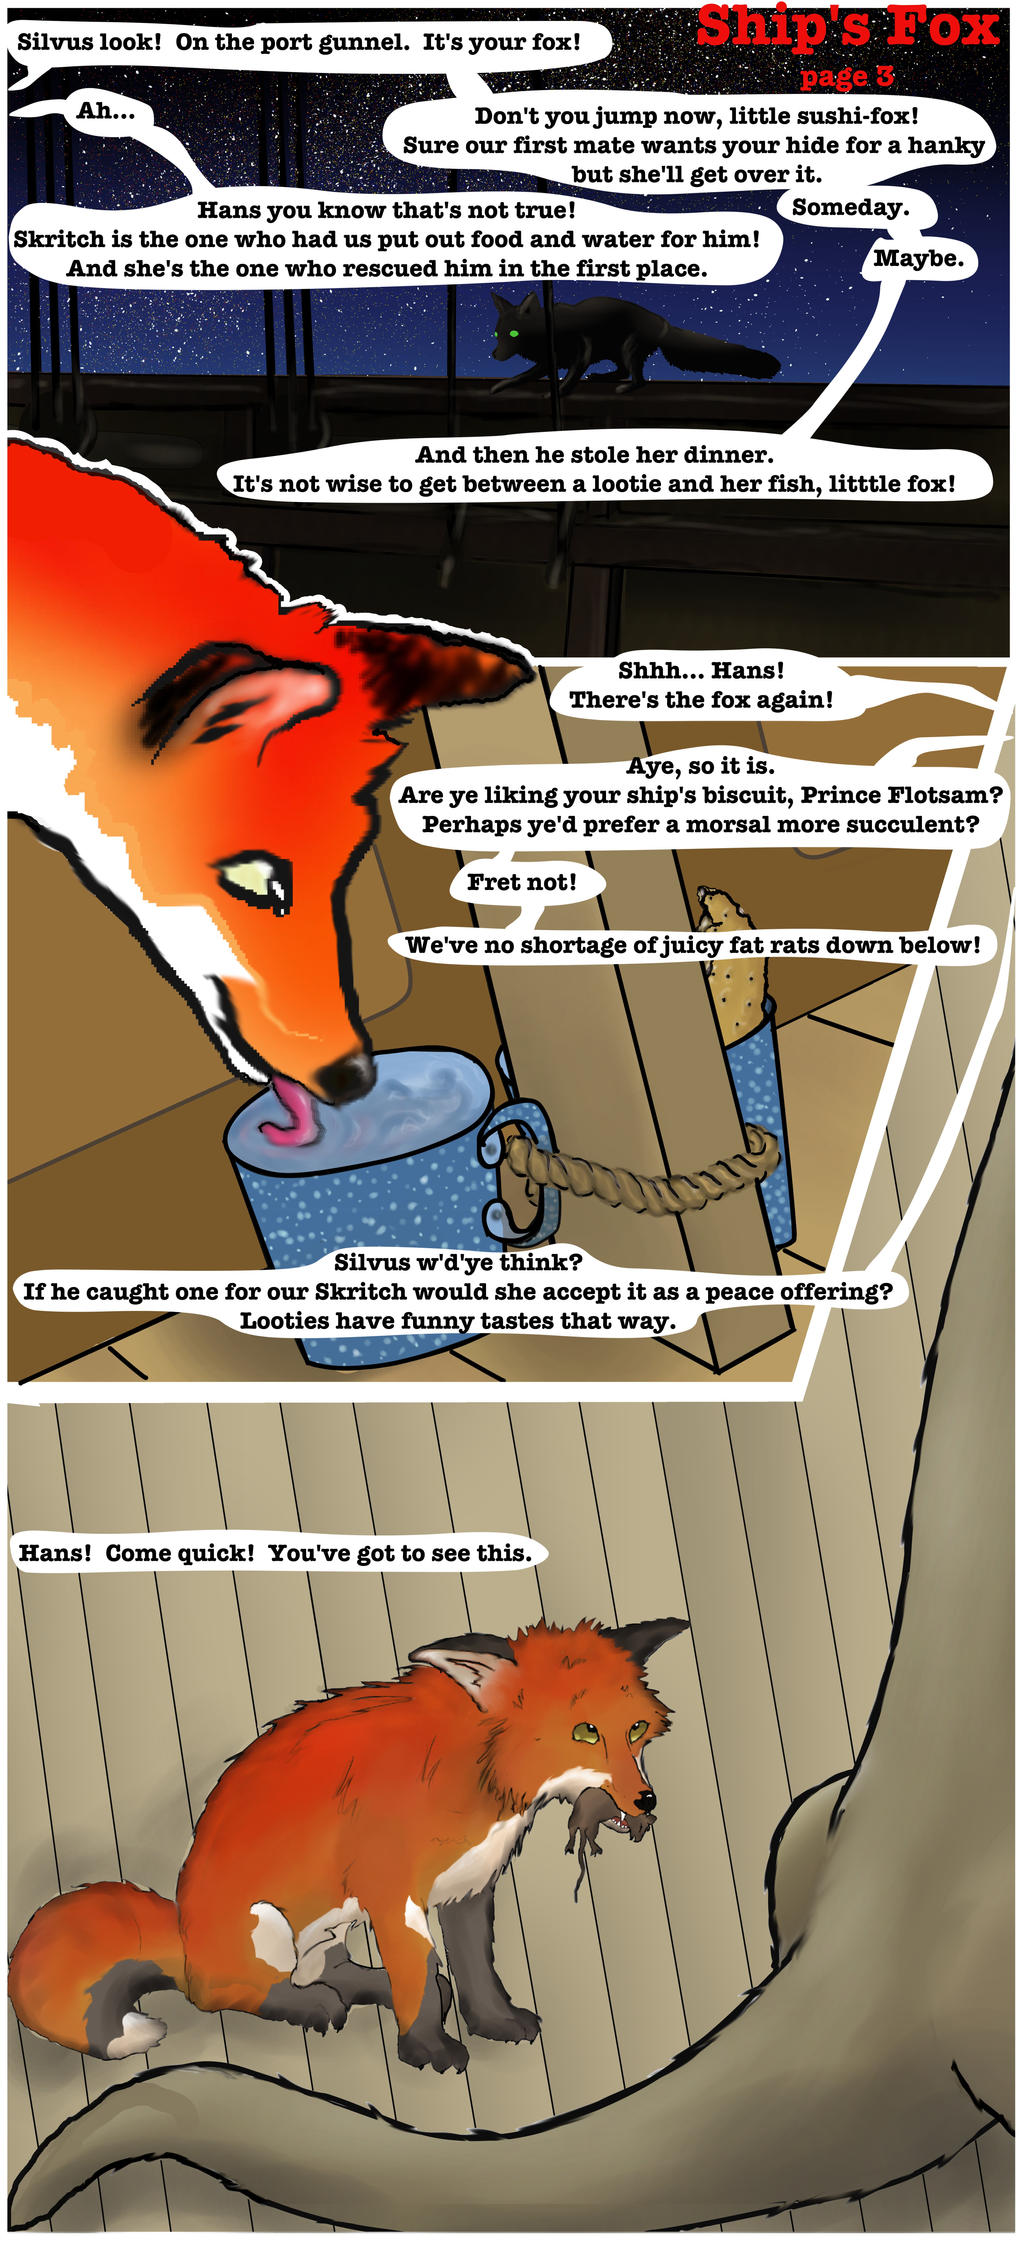 Ship's Fox page 3 by songdawg